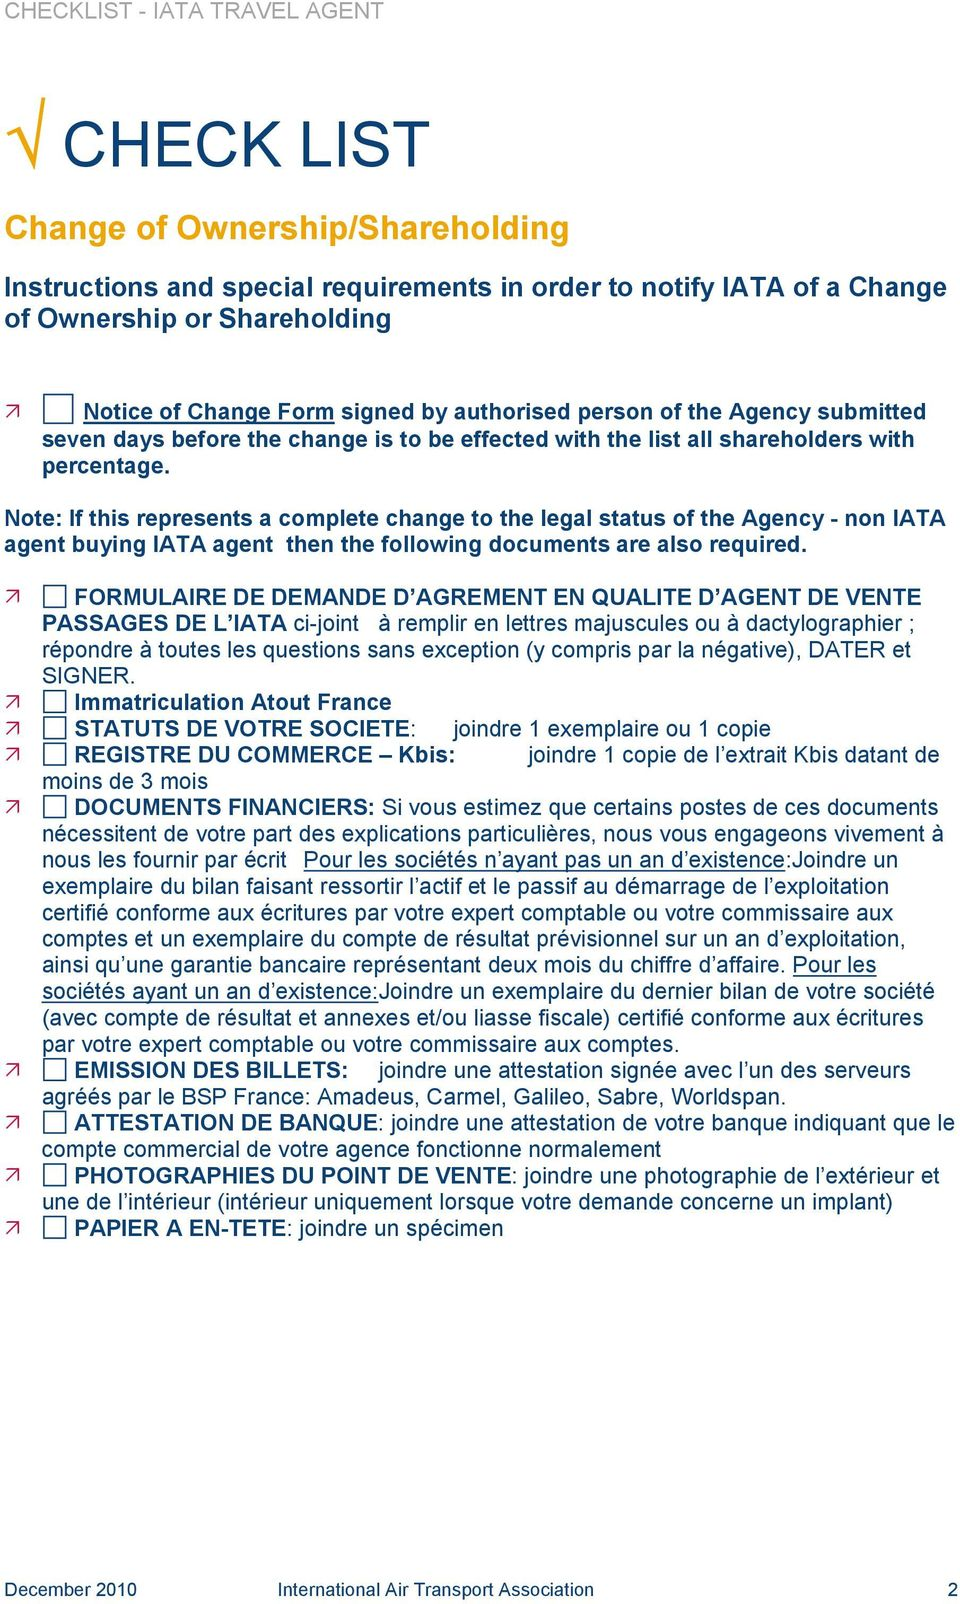 Note: If this represents a complete change to the legal status of the Agency - non IATA agent buying IATA agent then the following documents are also required.